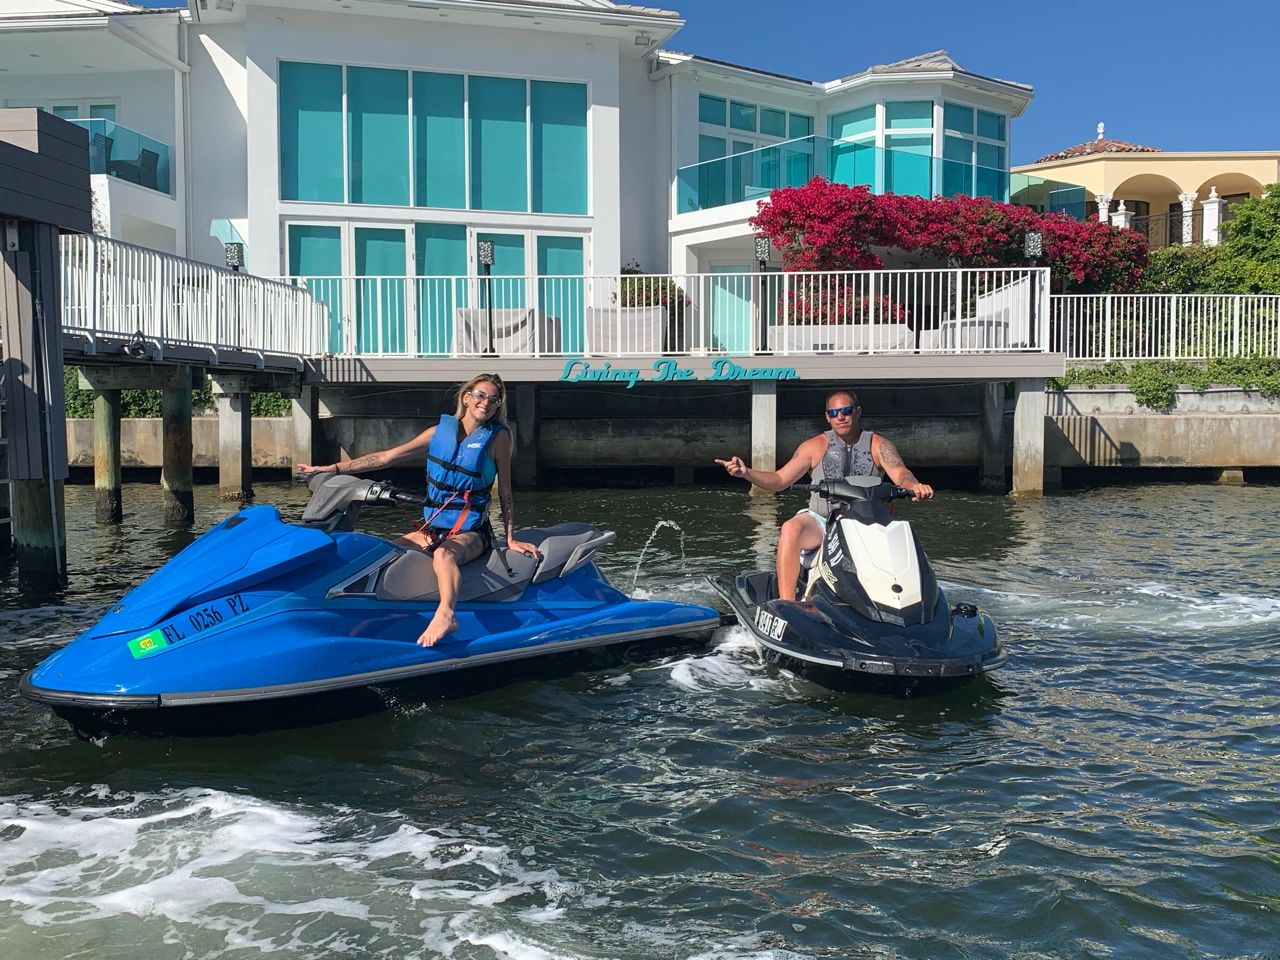 Enjoy Pompano Beach on the water! With our brand new 2020 Yamaha VX where every ride is personalized